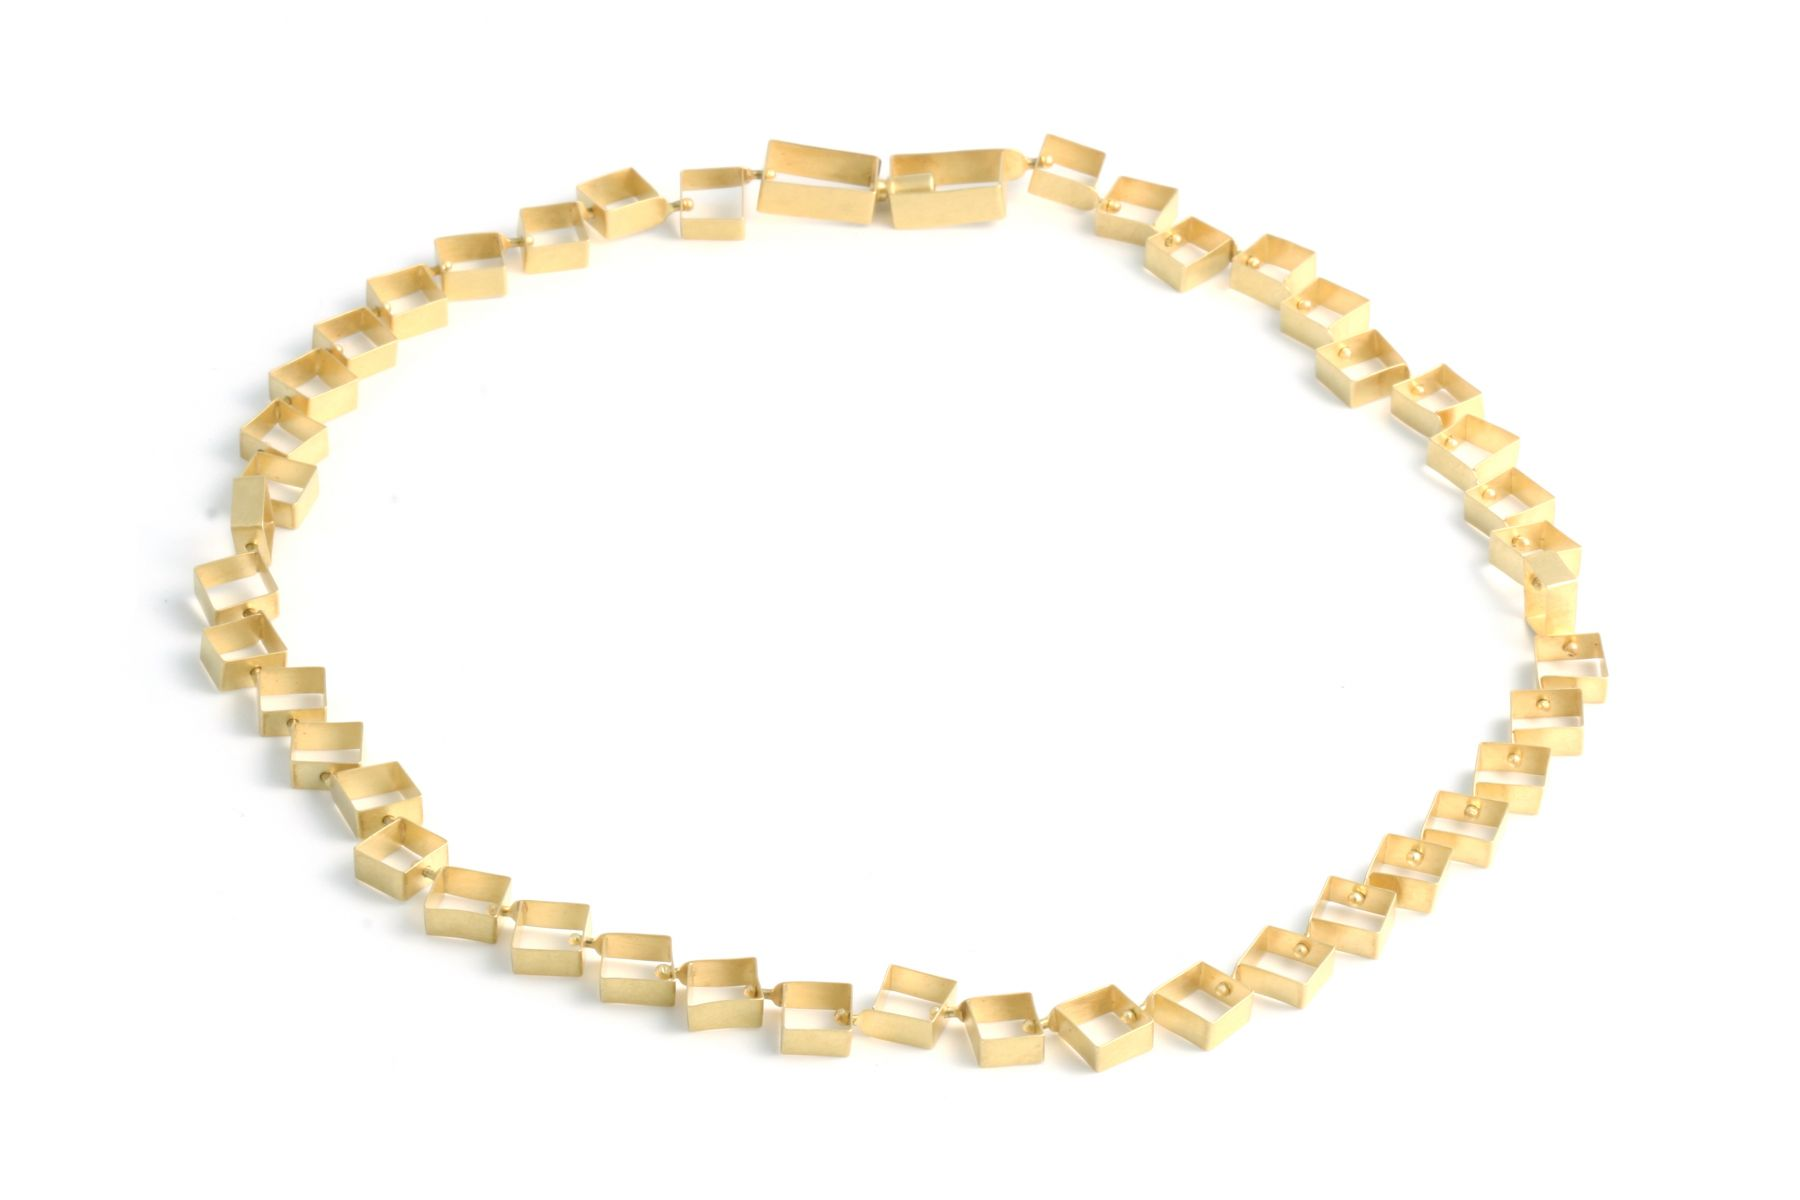 Dorothea Striffler, necklace, gold